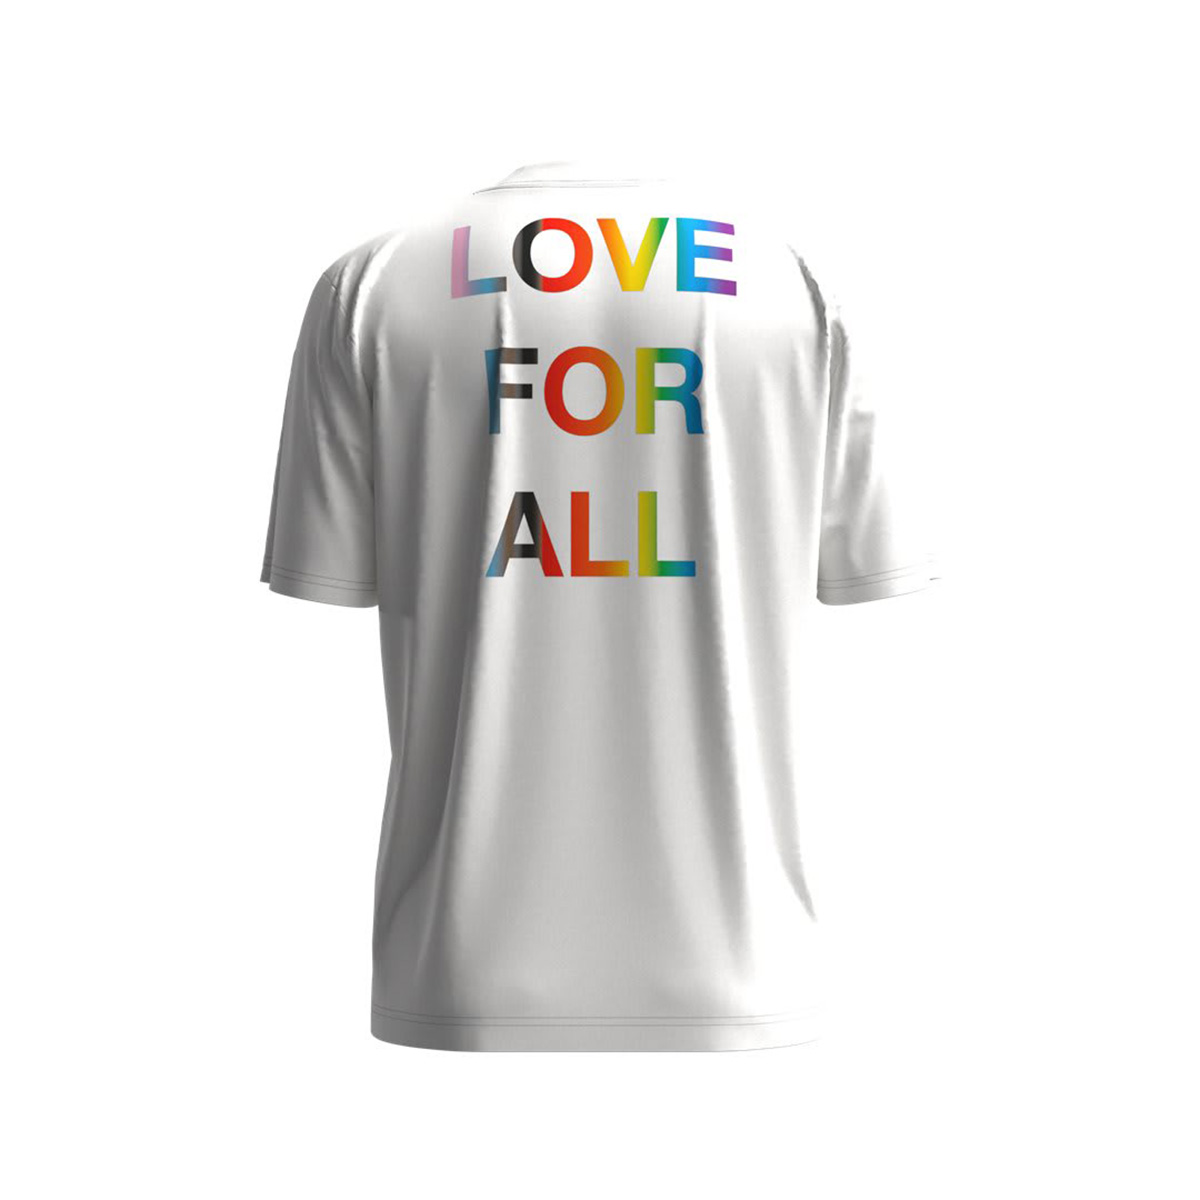 BOSS celebrates Pride Month 2021 with a capsule collection